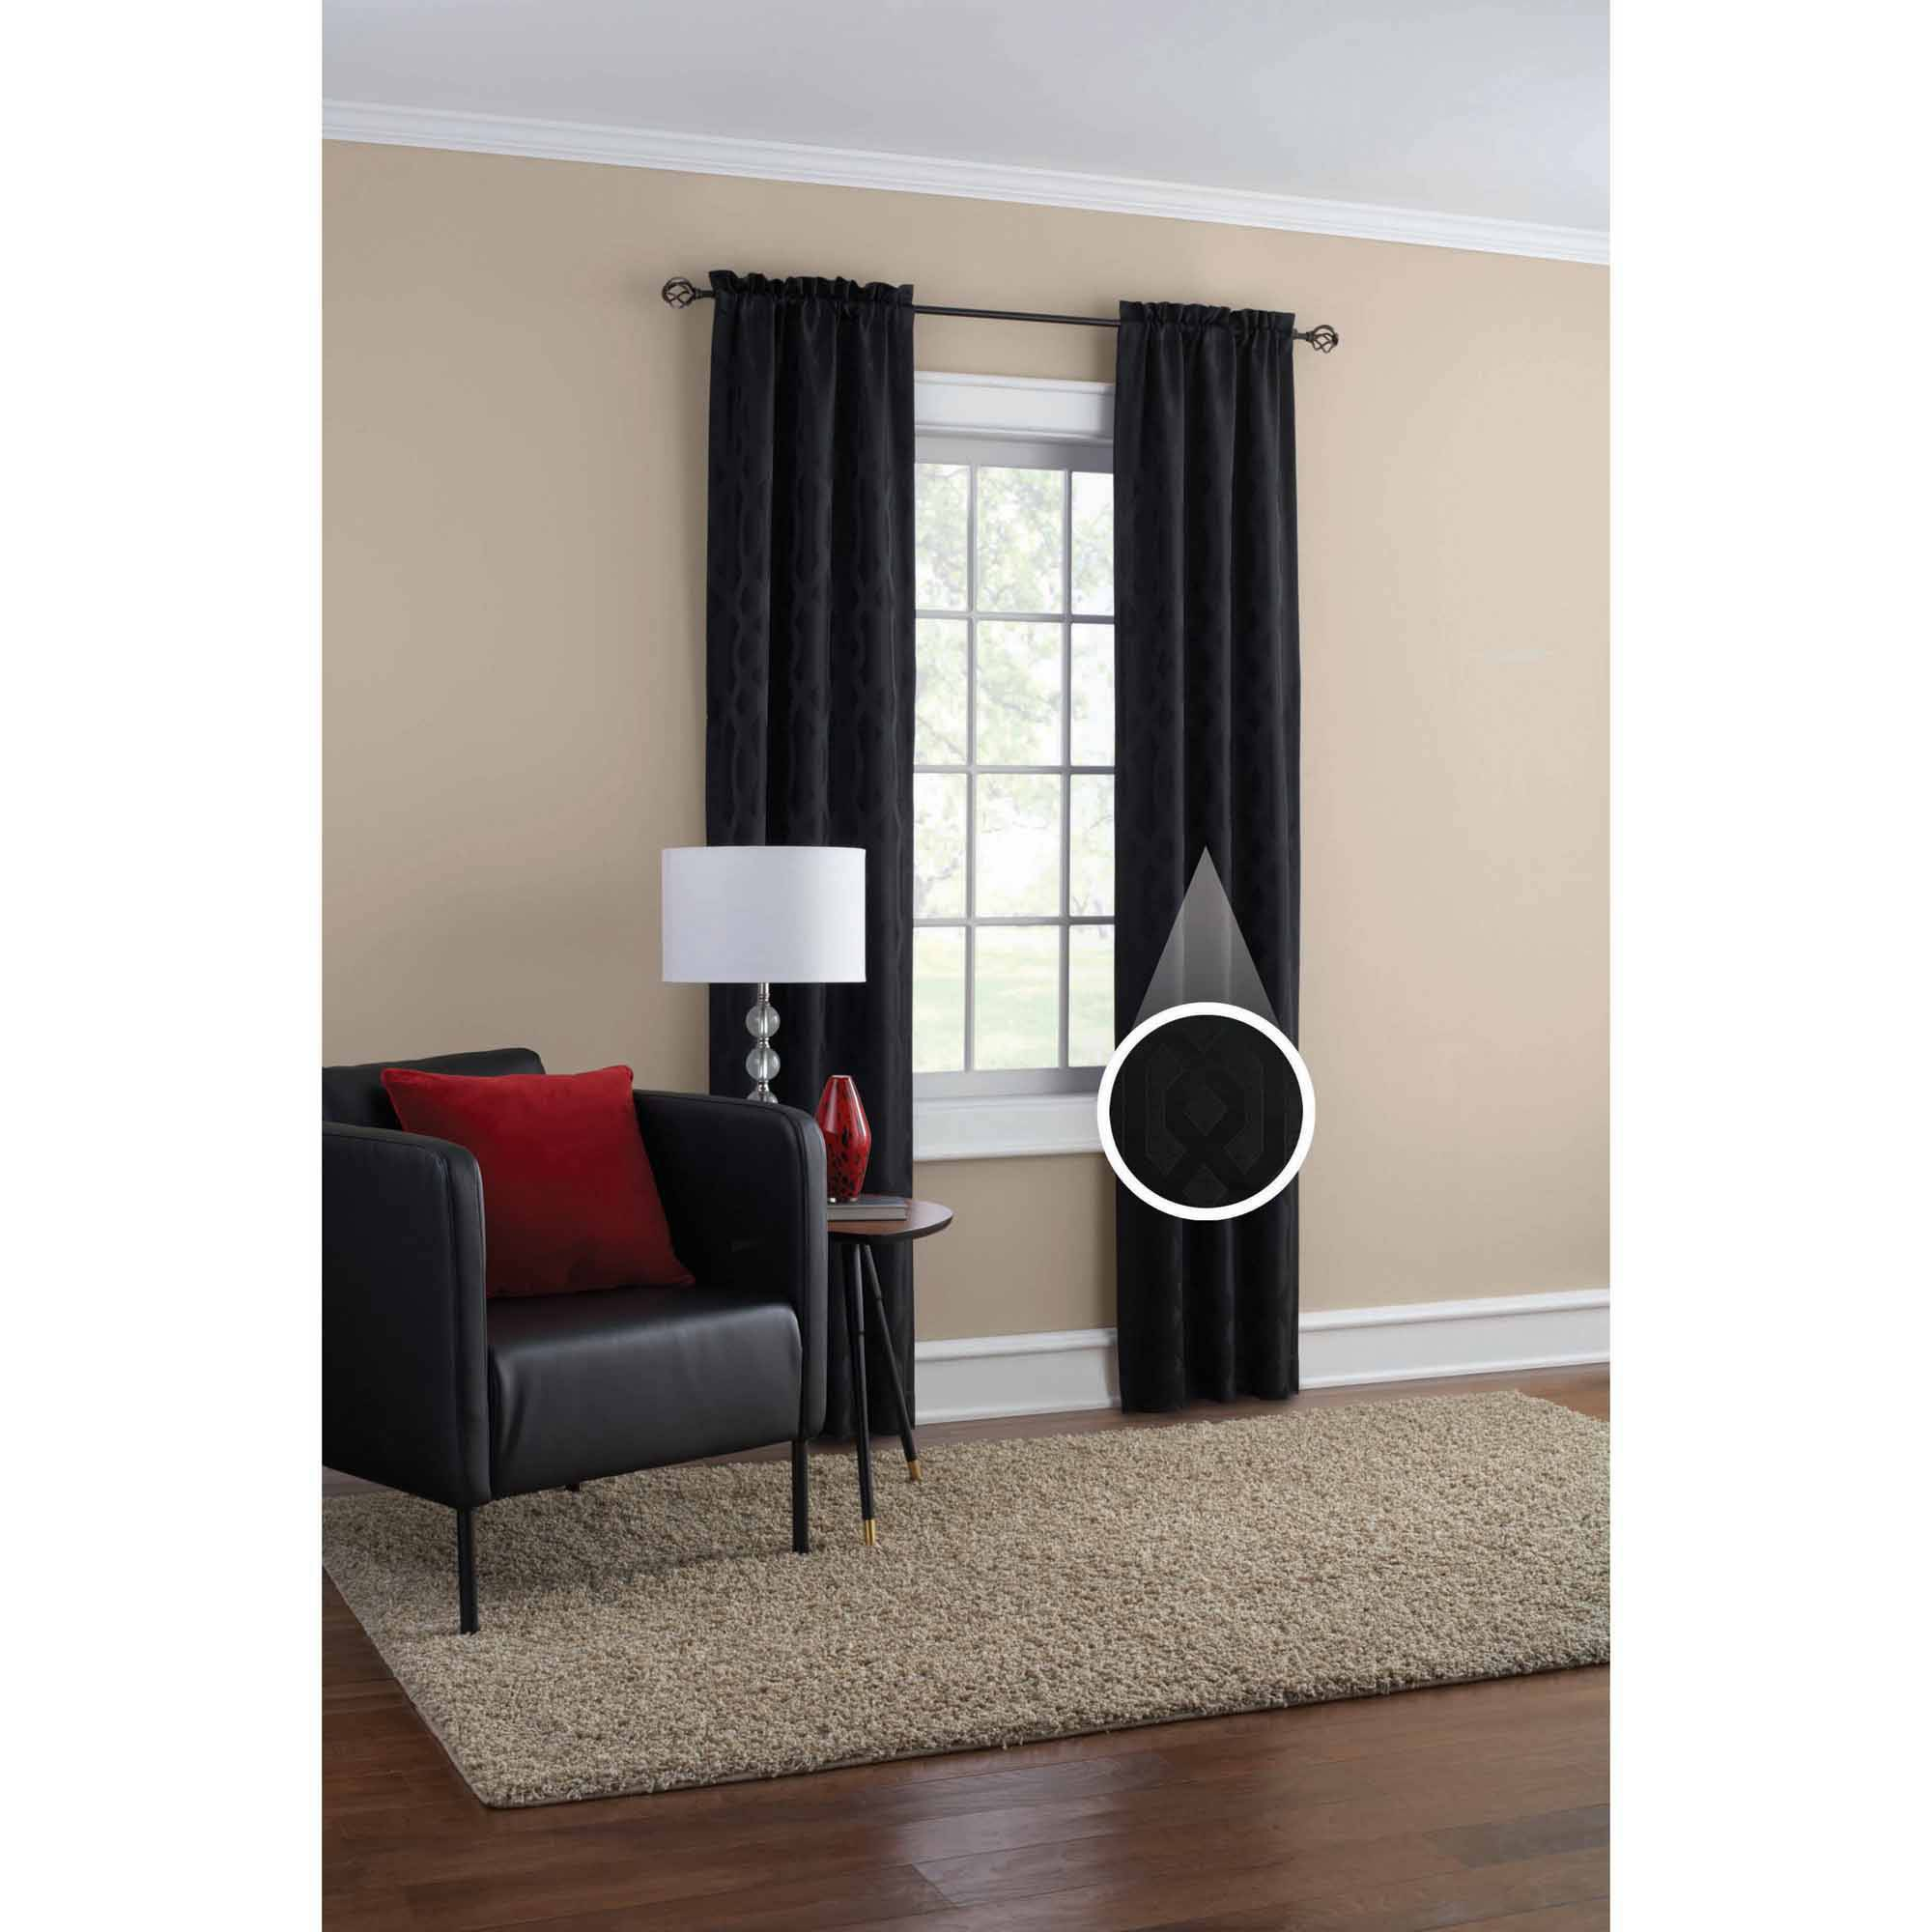 mainstays jacquard window curtains, set of 2 - walmart